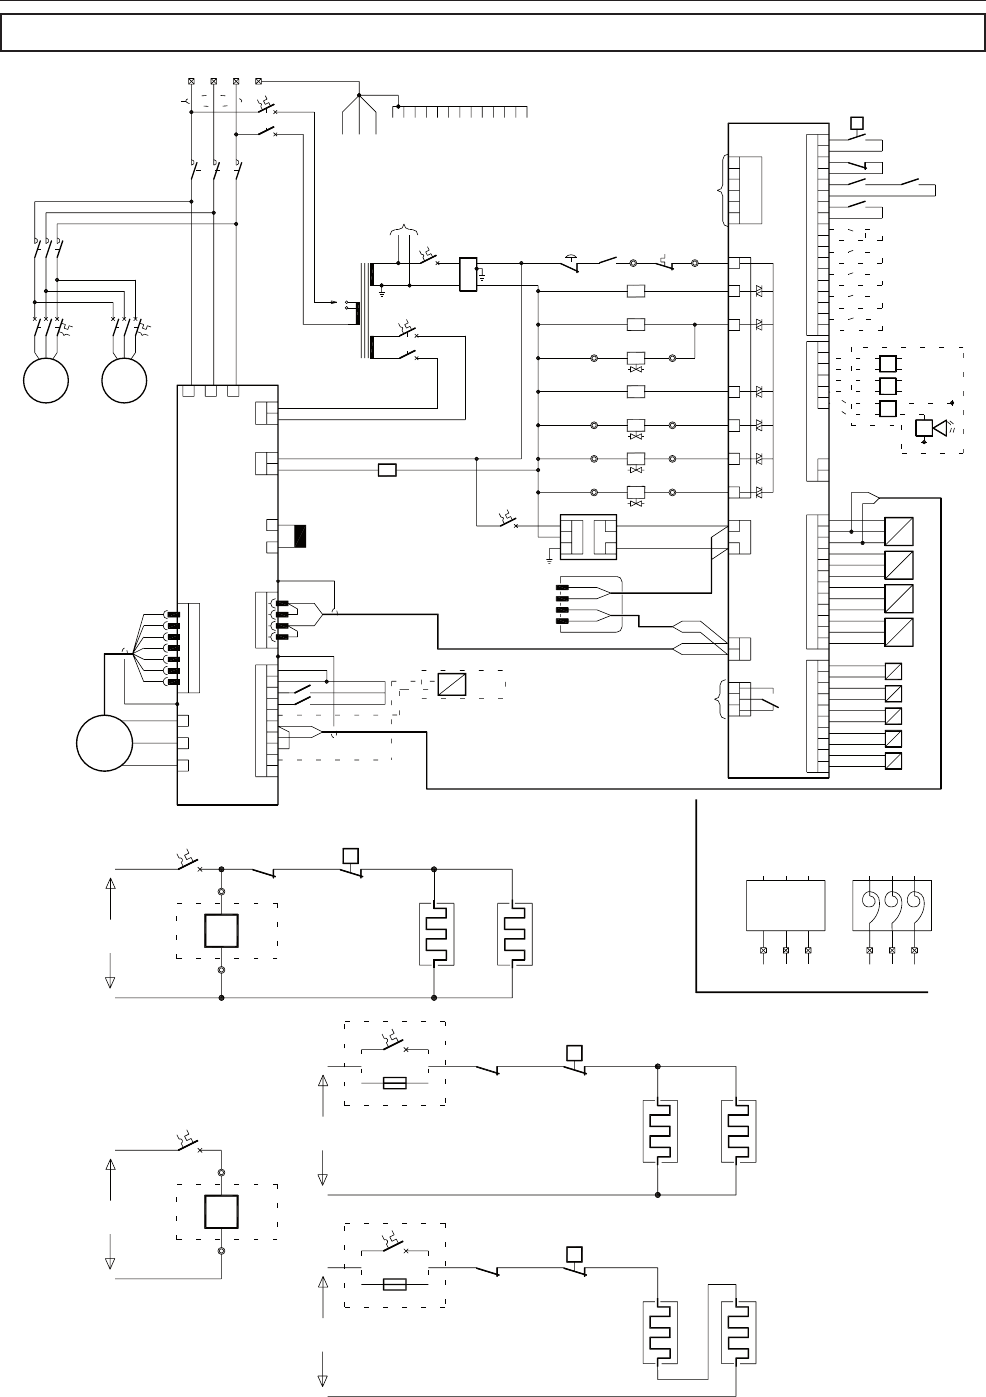 09348767 19eb 4440 9350 a94ca31df7f5 bg3e page 62 of ingersoll rand air compressor irn50 200h cc user guide ingersoll rand compressor wiring diagram at n-0.co